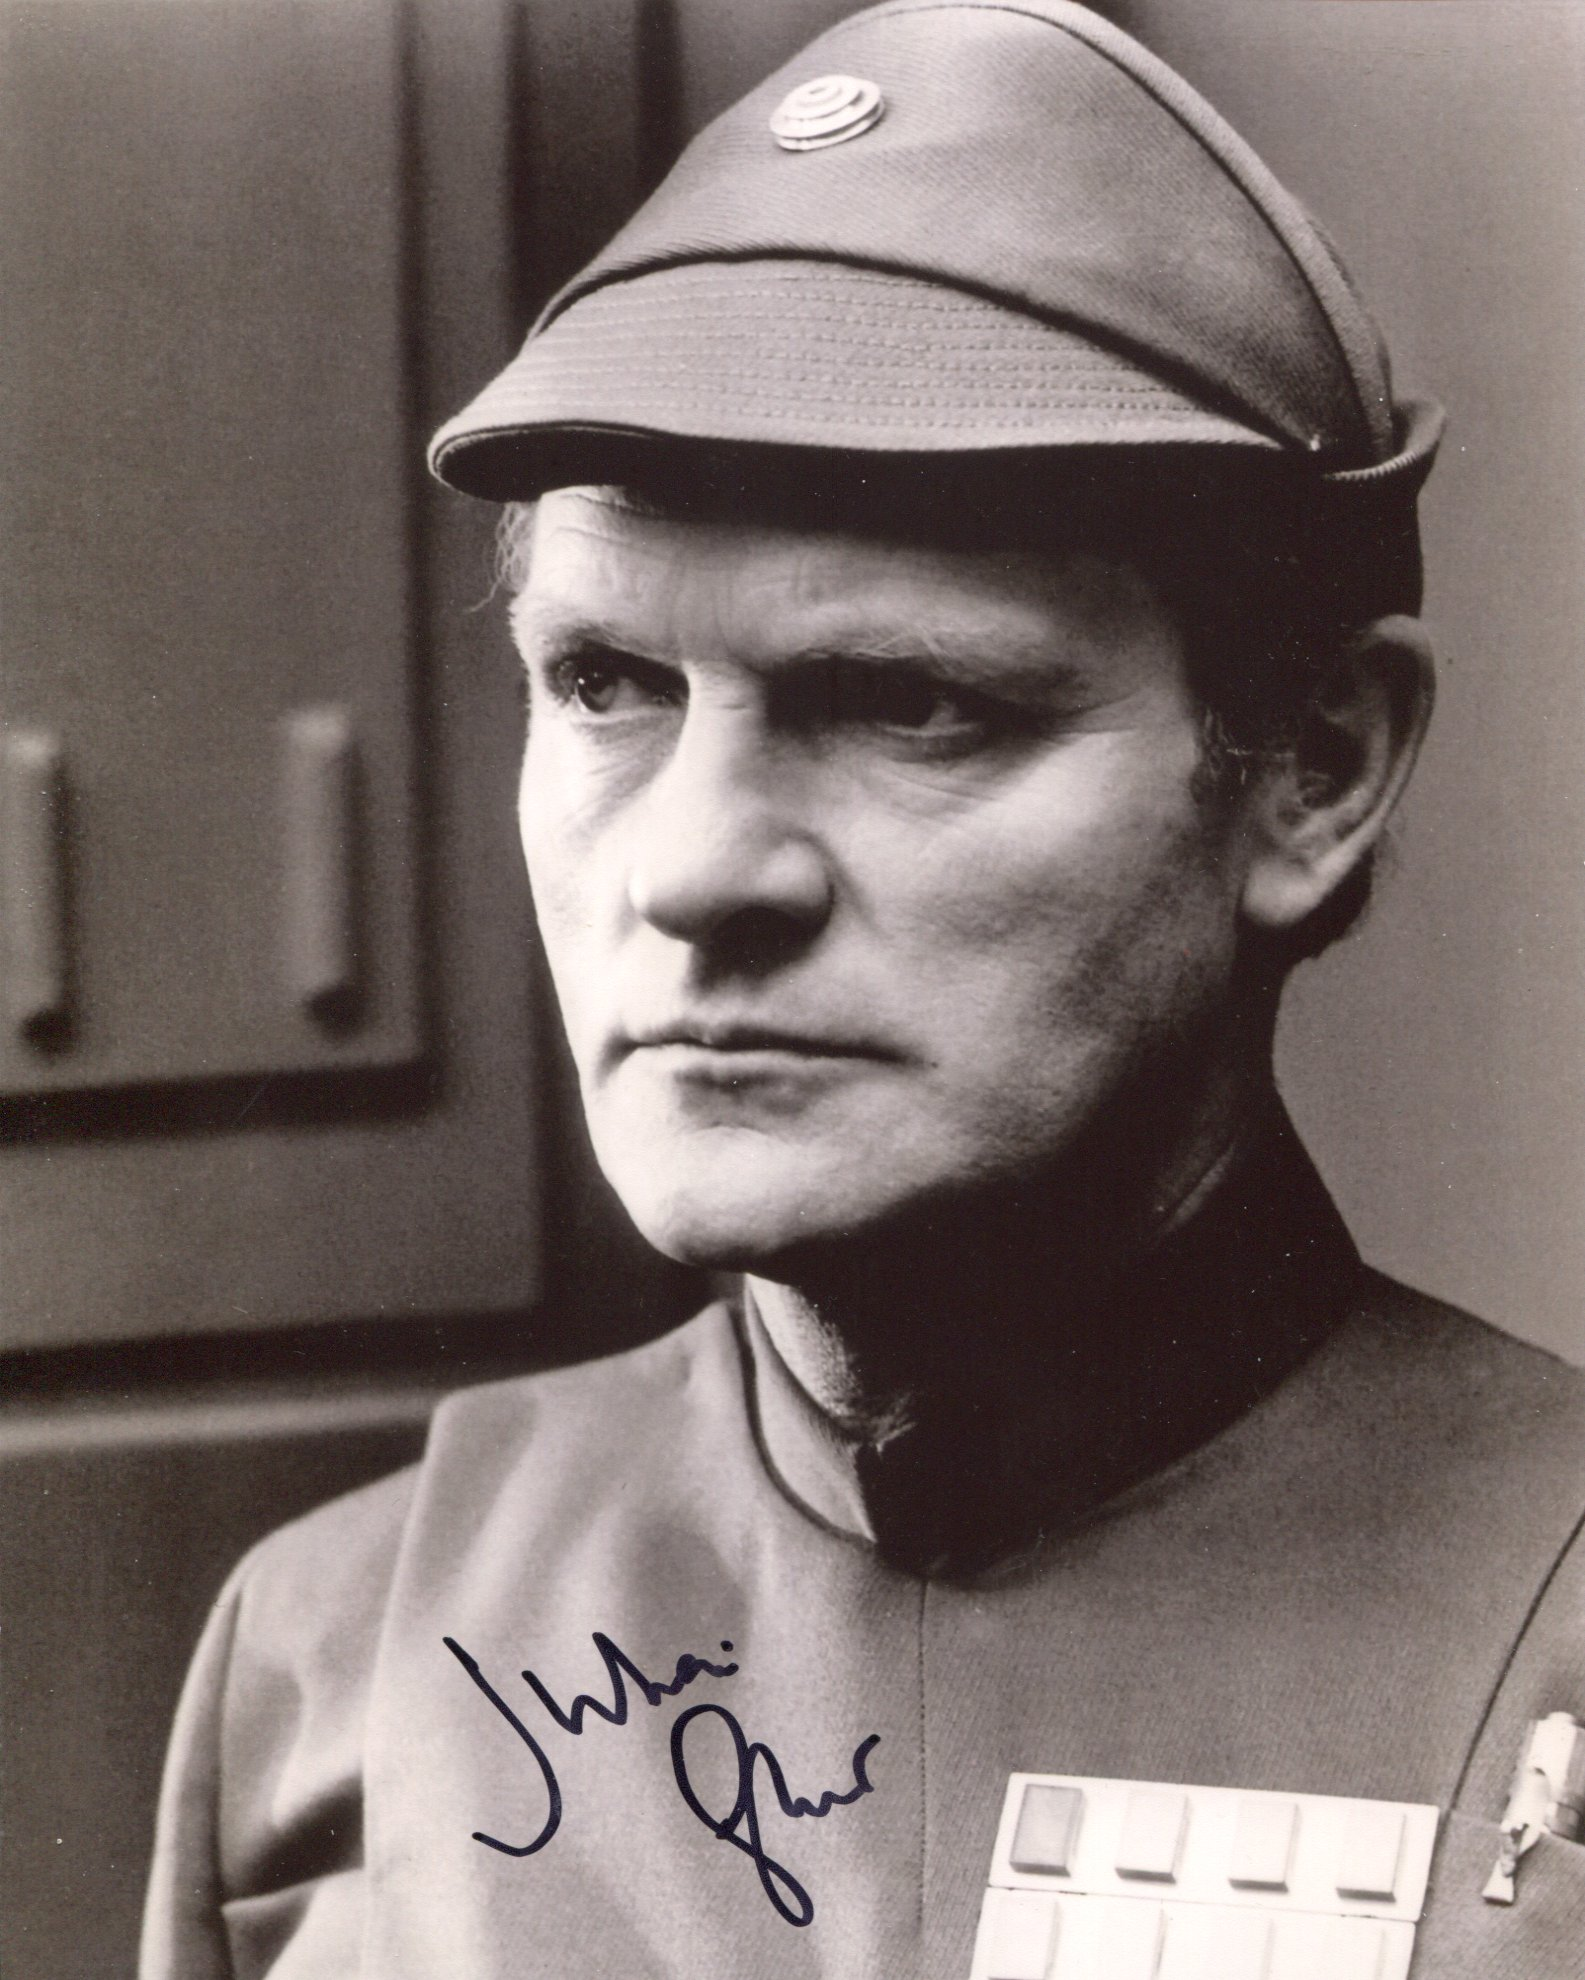 Star Wars 8x10 scene photo signed by actor Julian Glover (General Veers). Good condition. All